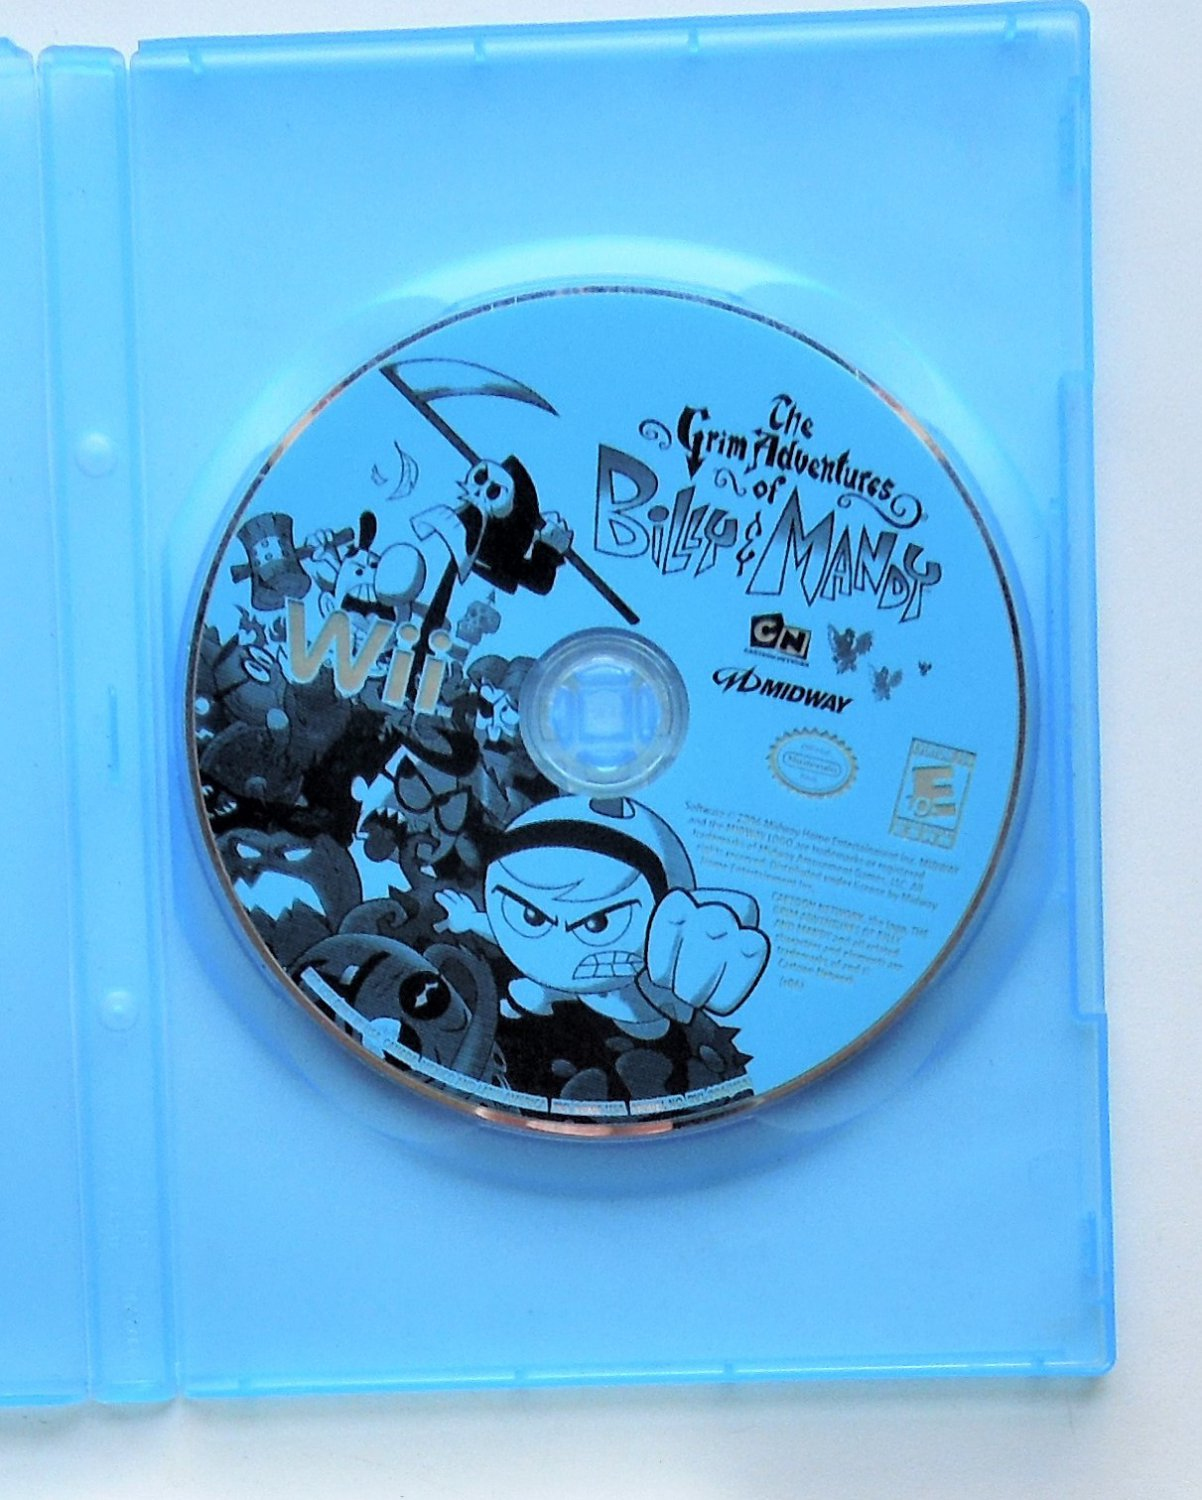 2006 Midway The Grim Adventures Of Billy & Mandy For Nintendo Wii Game Systems